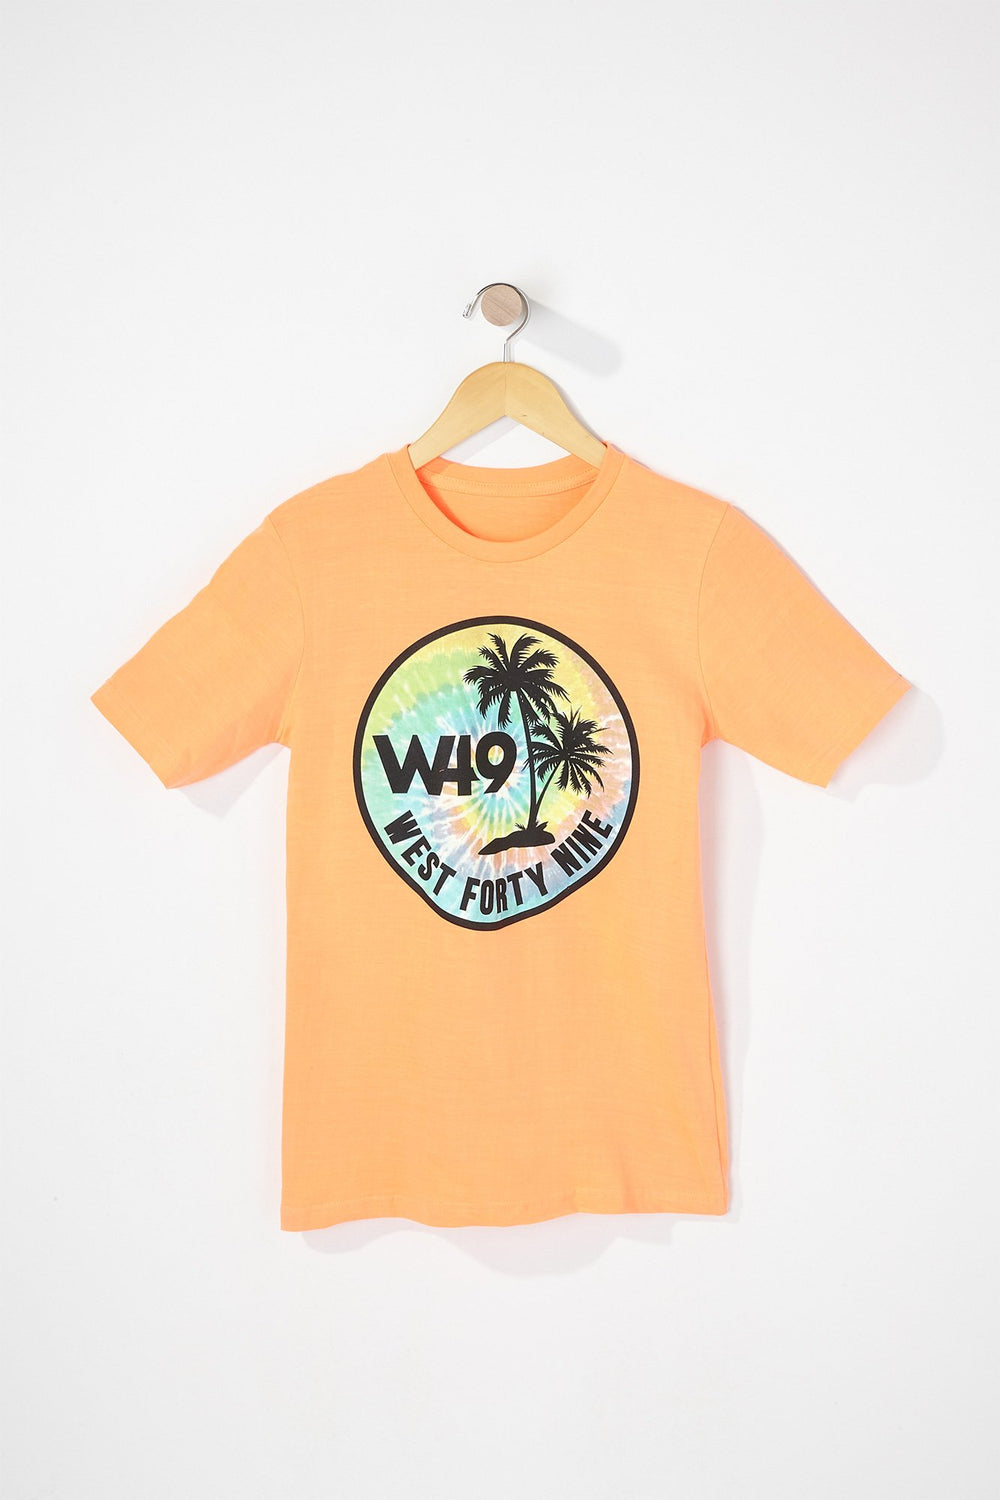 West49 Boys Tie Dye Circle Logo T-Shirt Orange